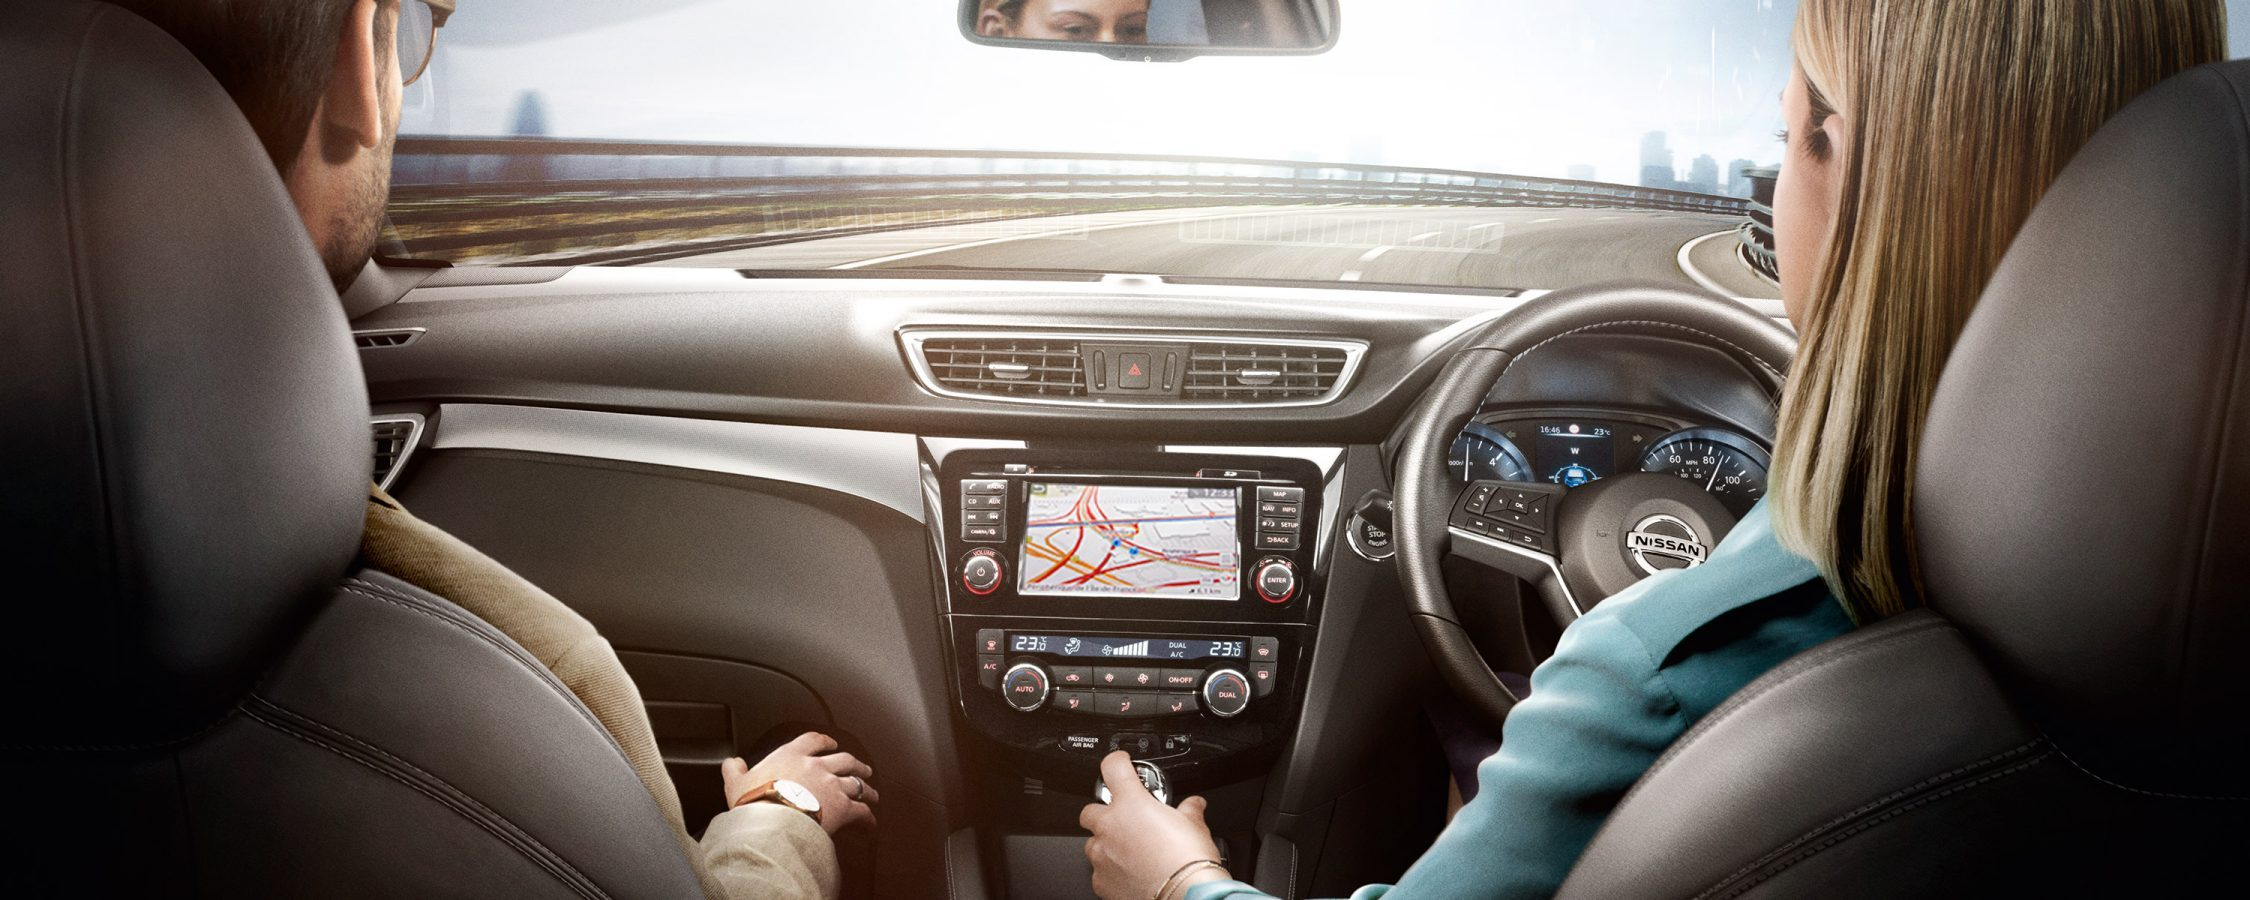 Nissan Qashqai interior view of the dashboard with people